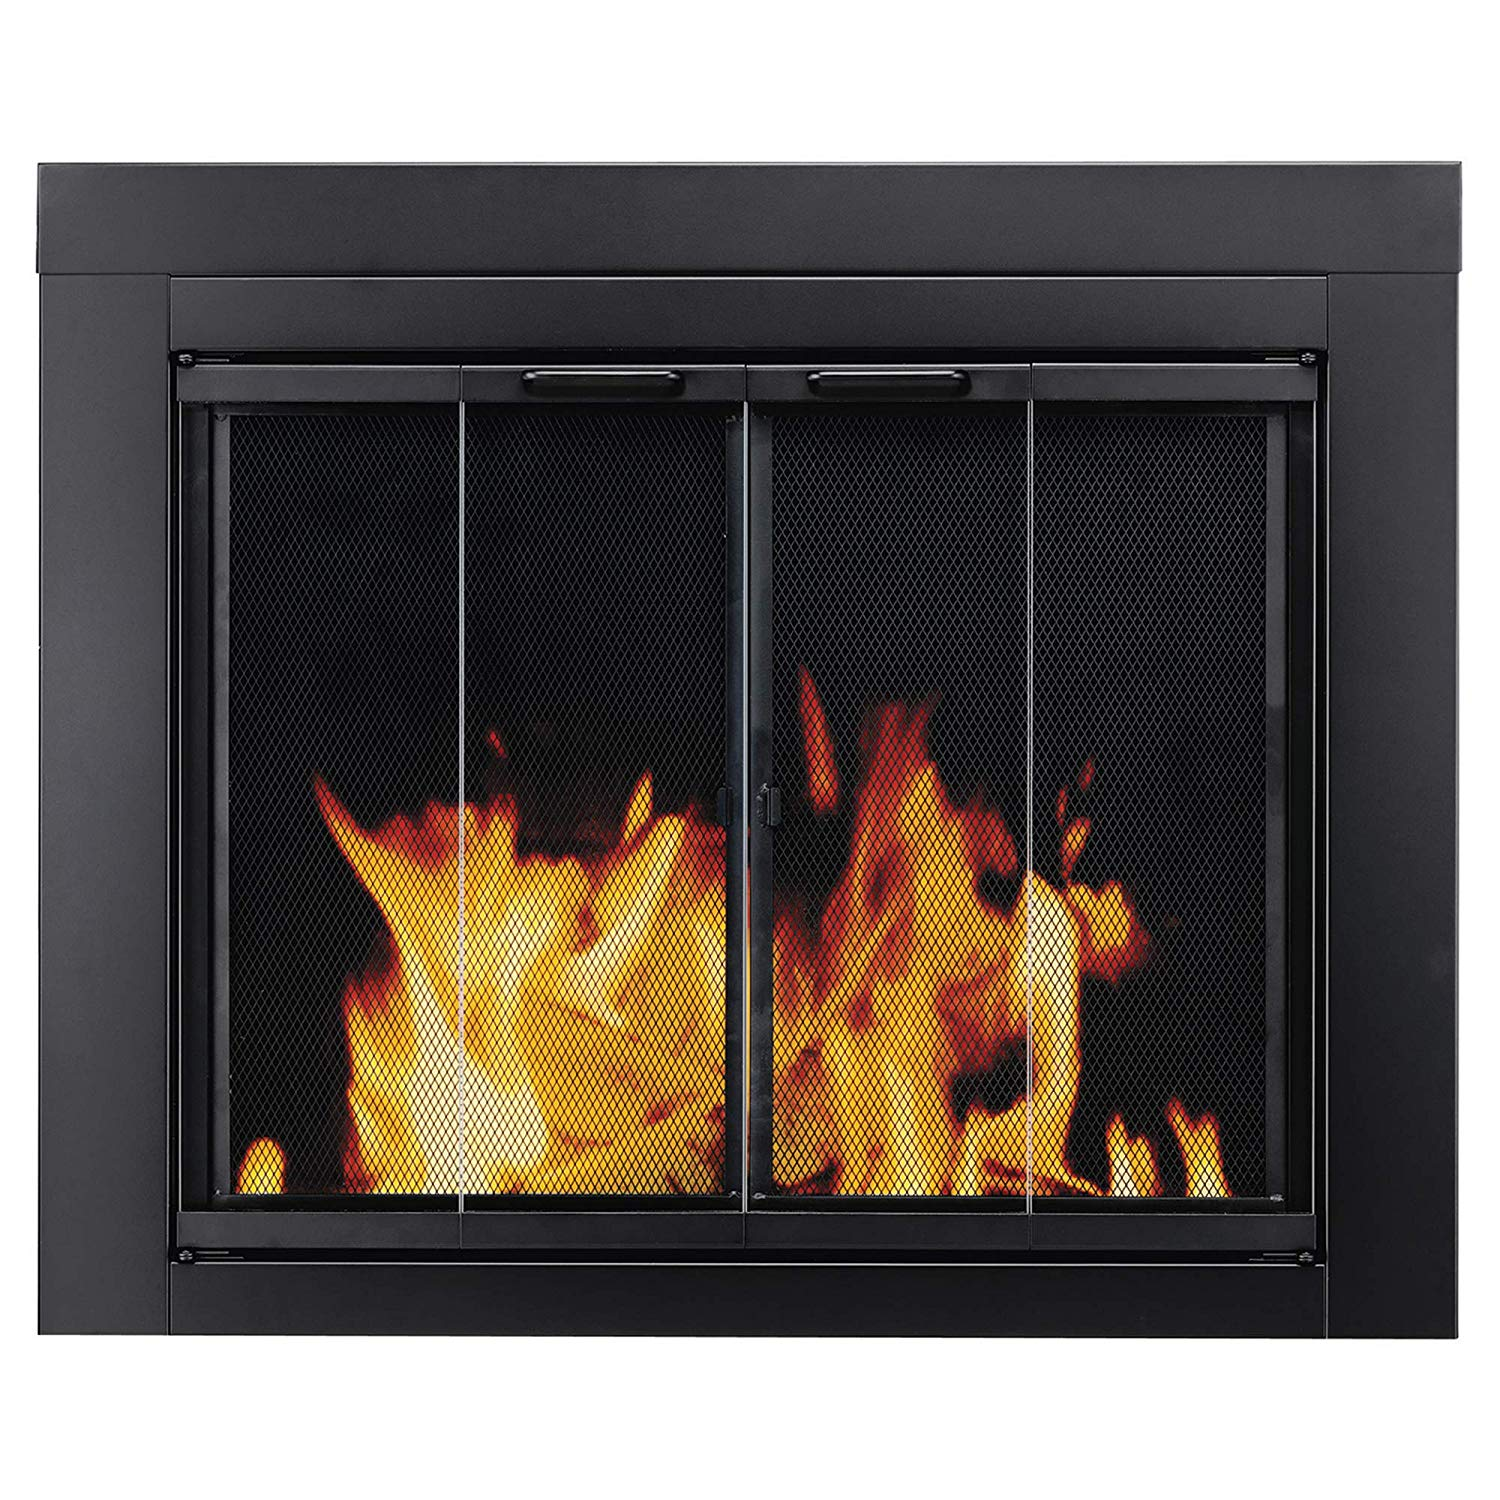 Fireplace Door Cover Awesome Pleasant Hearth at 1000 ascot Fireplace Glass Door Black Small